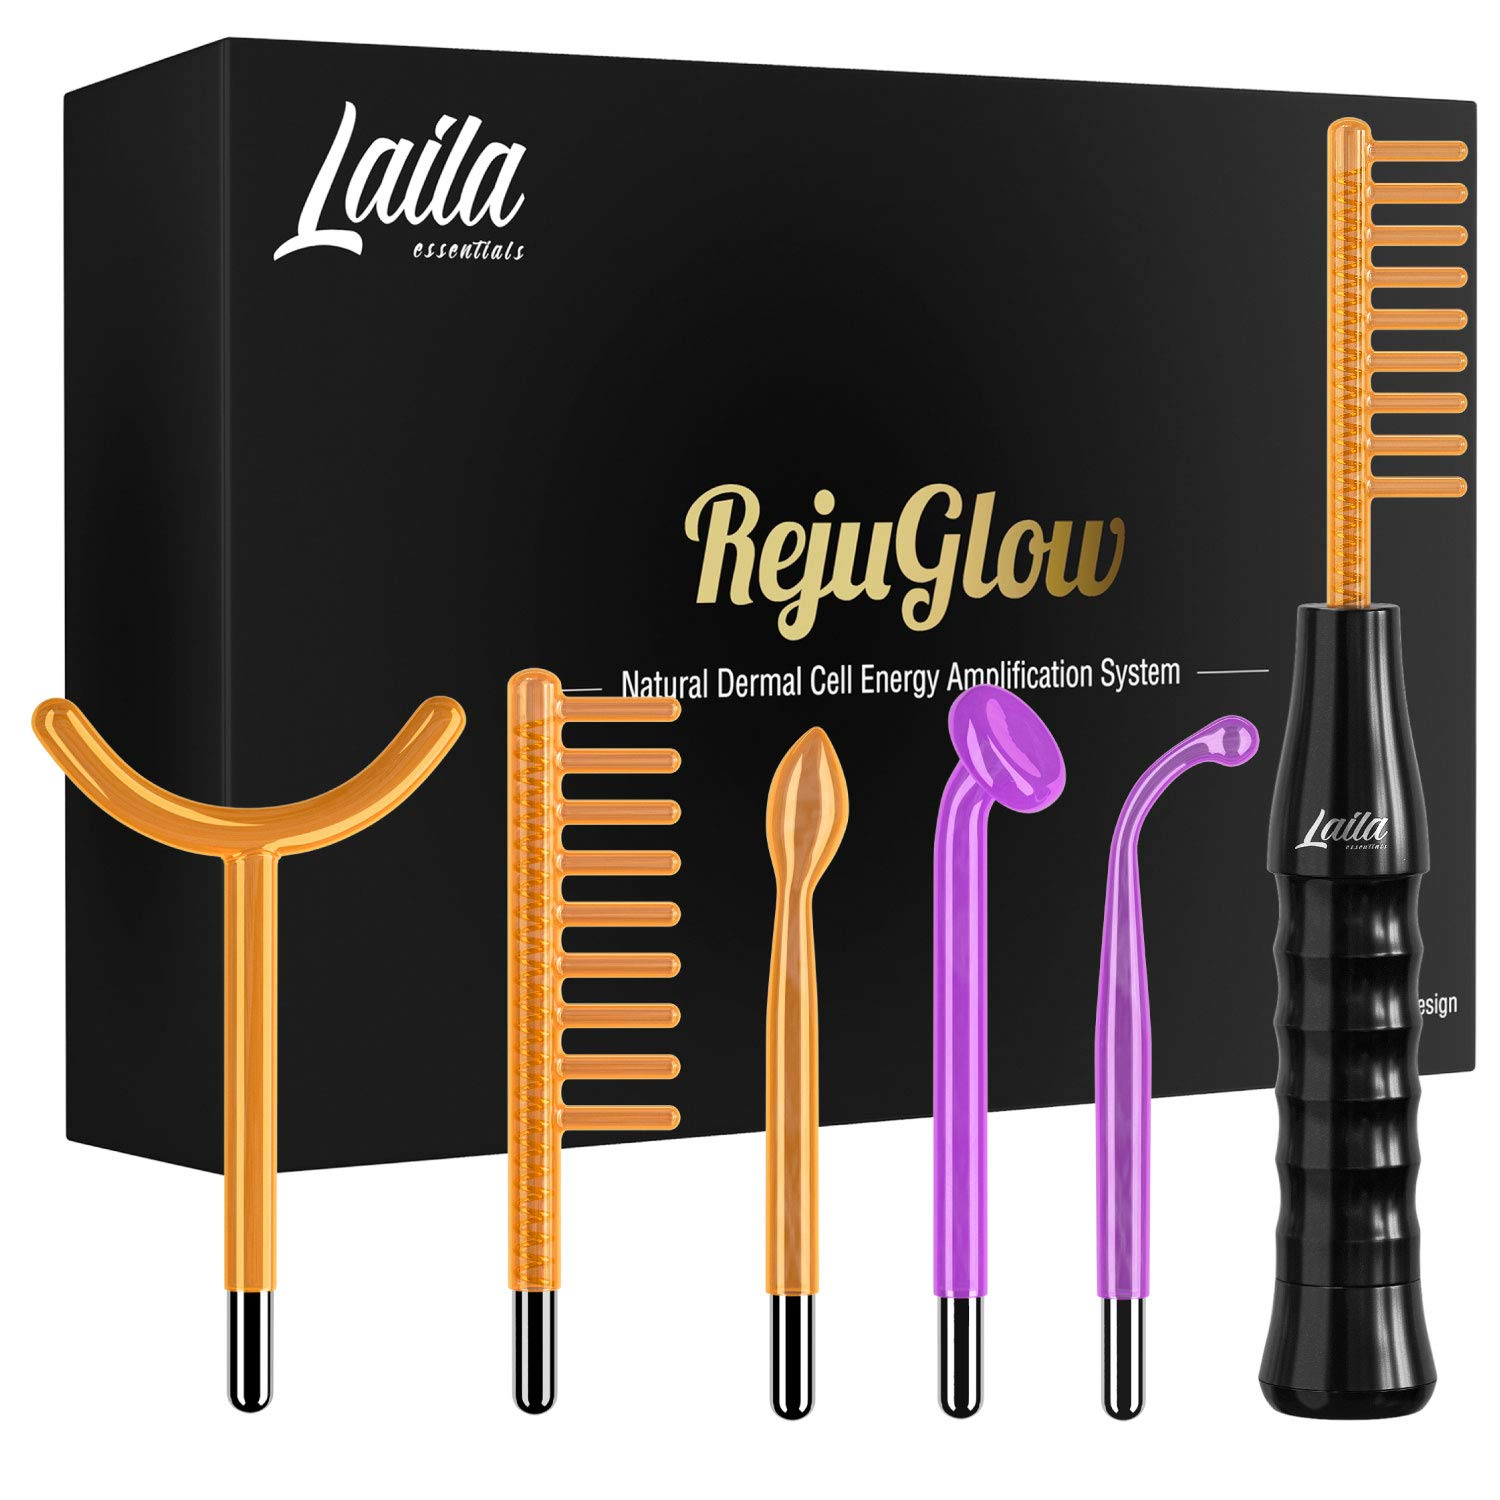 Laila Essentials Portable Handheld High Frequency Skin Therapy Wand Machine w/Neon - Acne Treatment - Skin Tightening - Wrinkle Reducing - Dark Circles - Puffy Eyes - Hair Follicle Stimulator